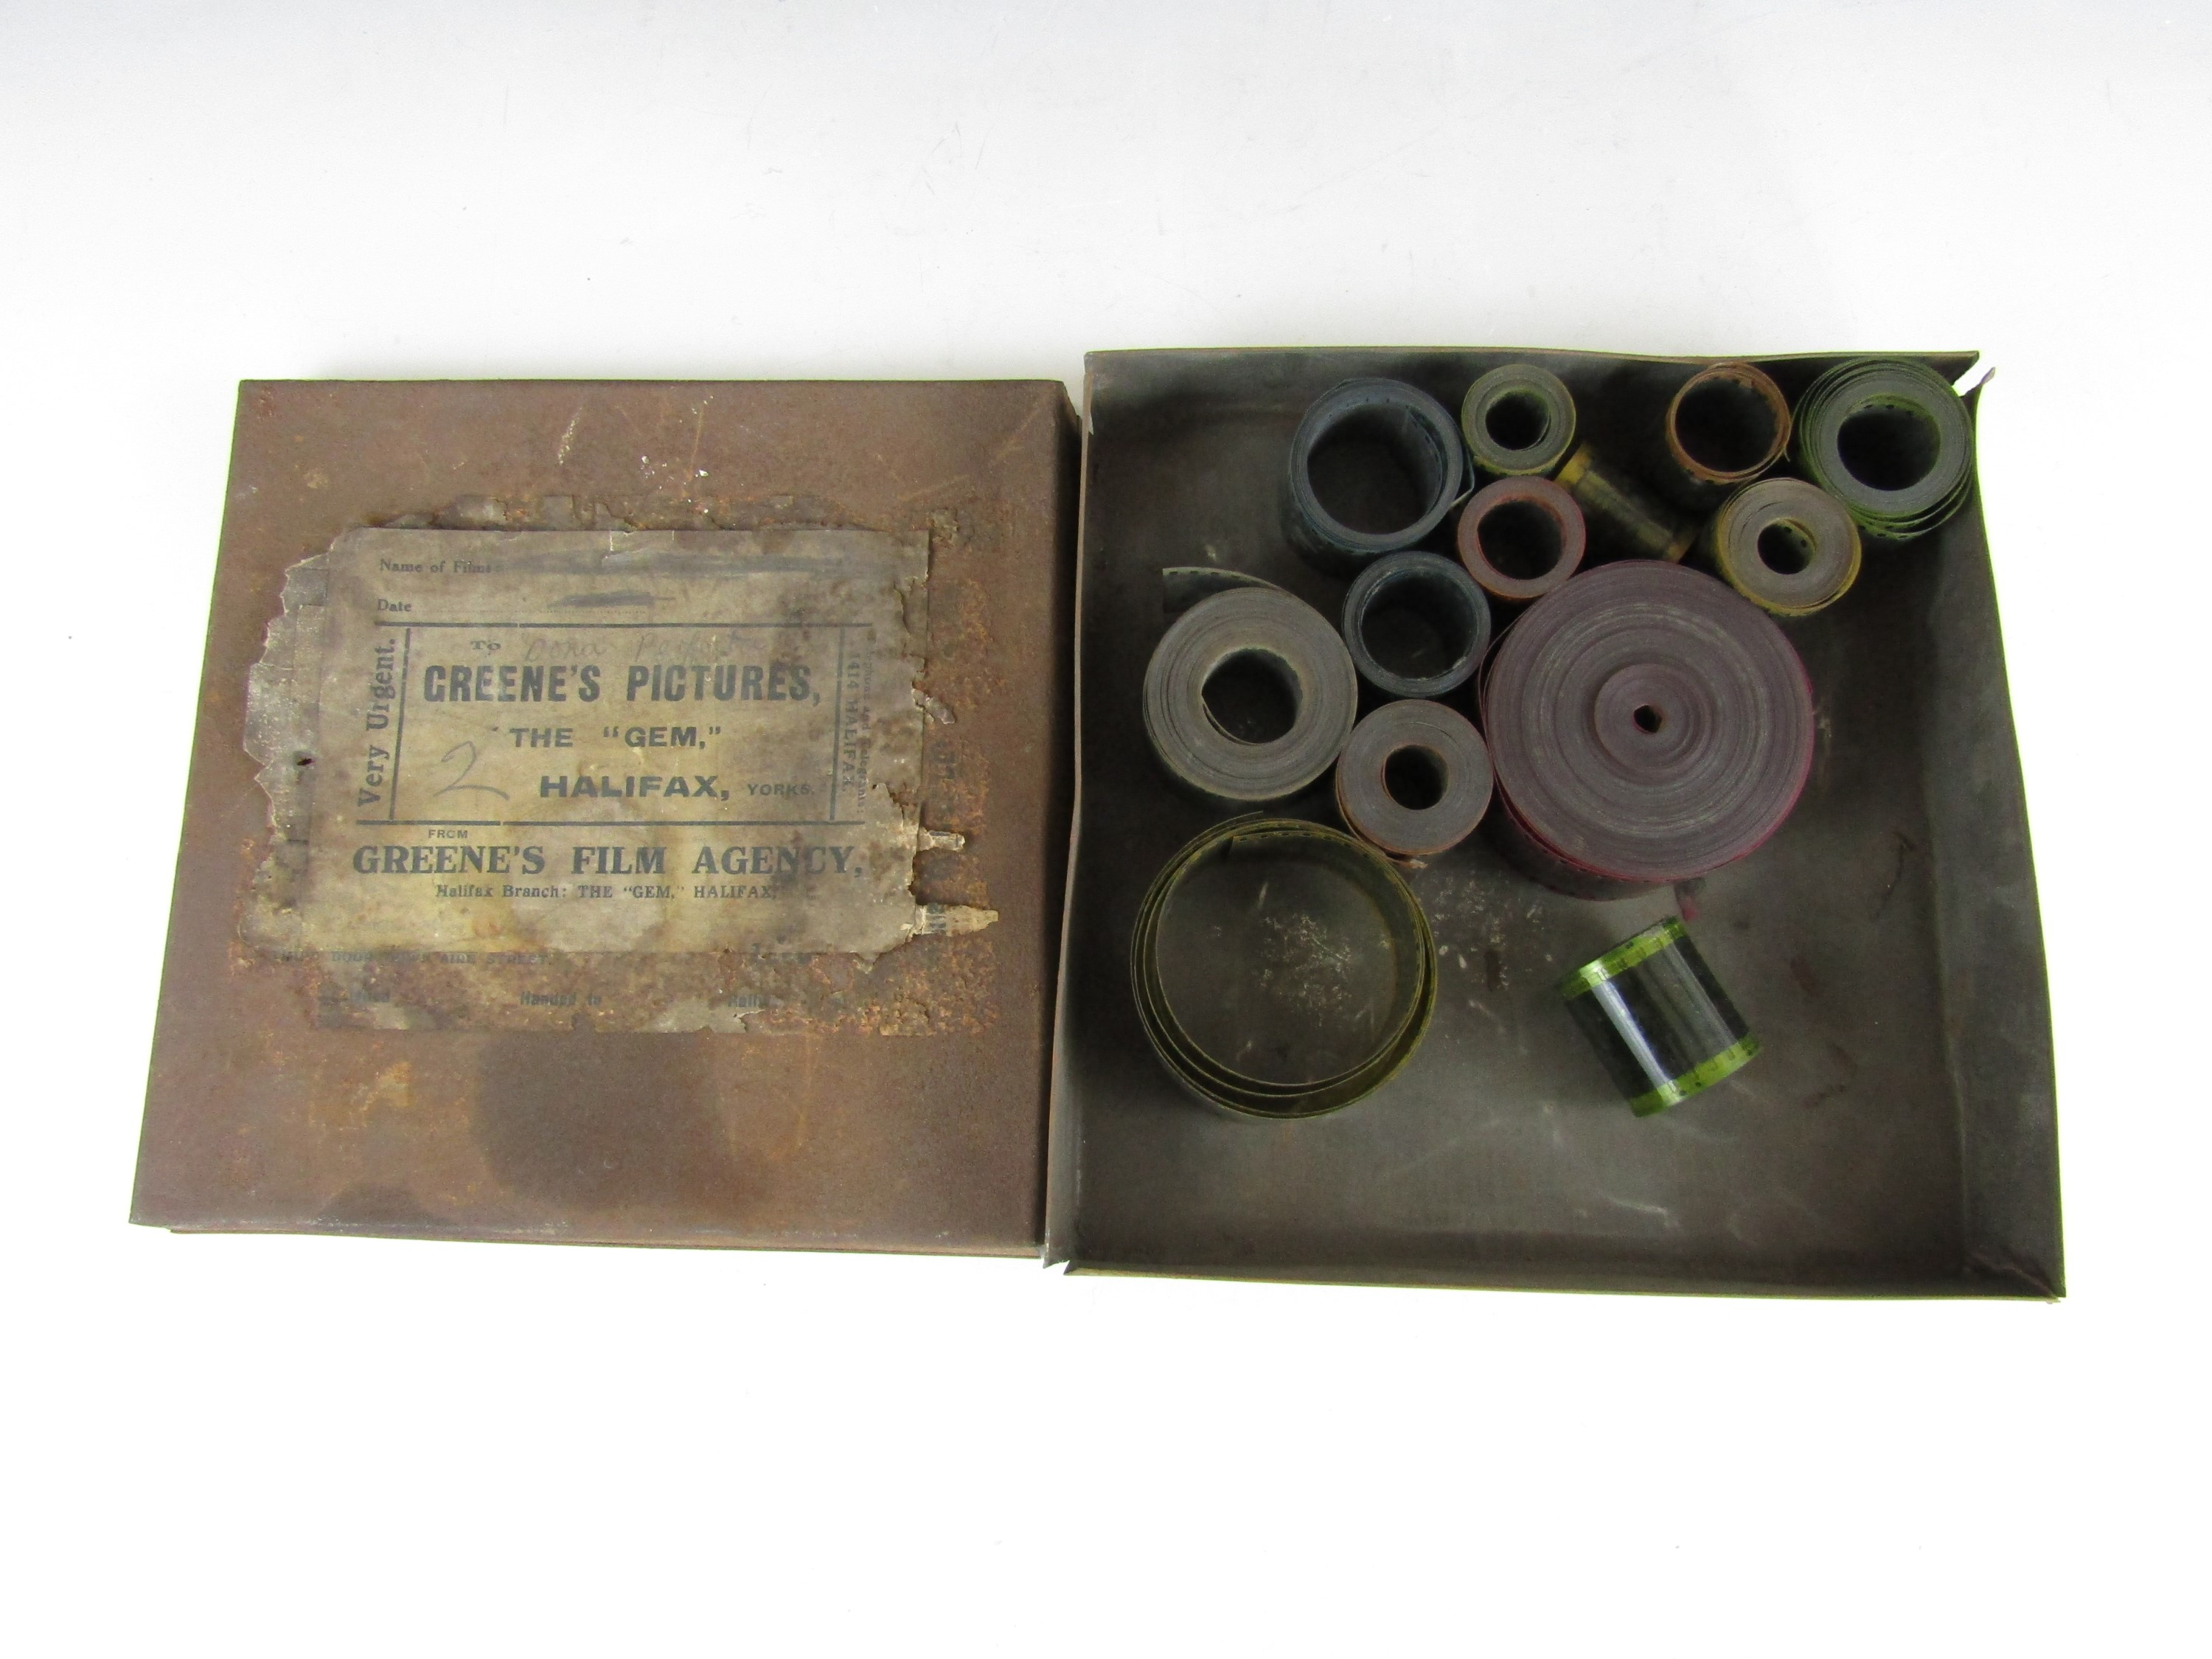 Lot 20 - [Motion Picture / Film] British Pathe 16mm newsreel footage of HRH The Prince of Wales arriving in